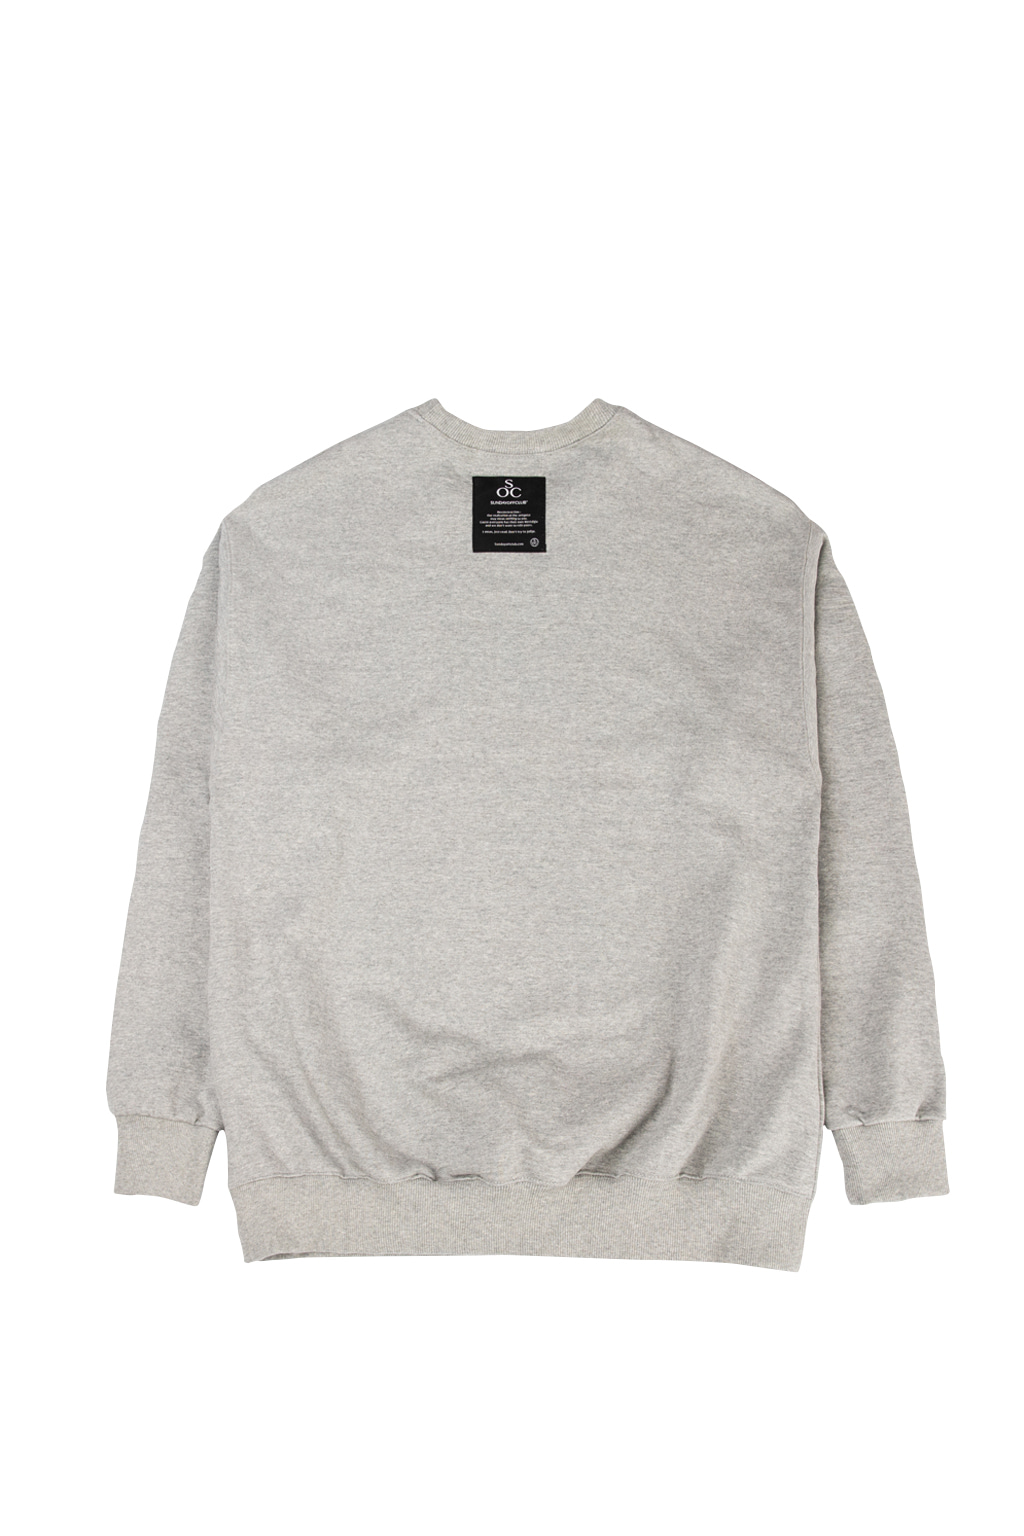 soc og logo crewneck - gray